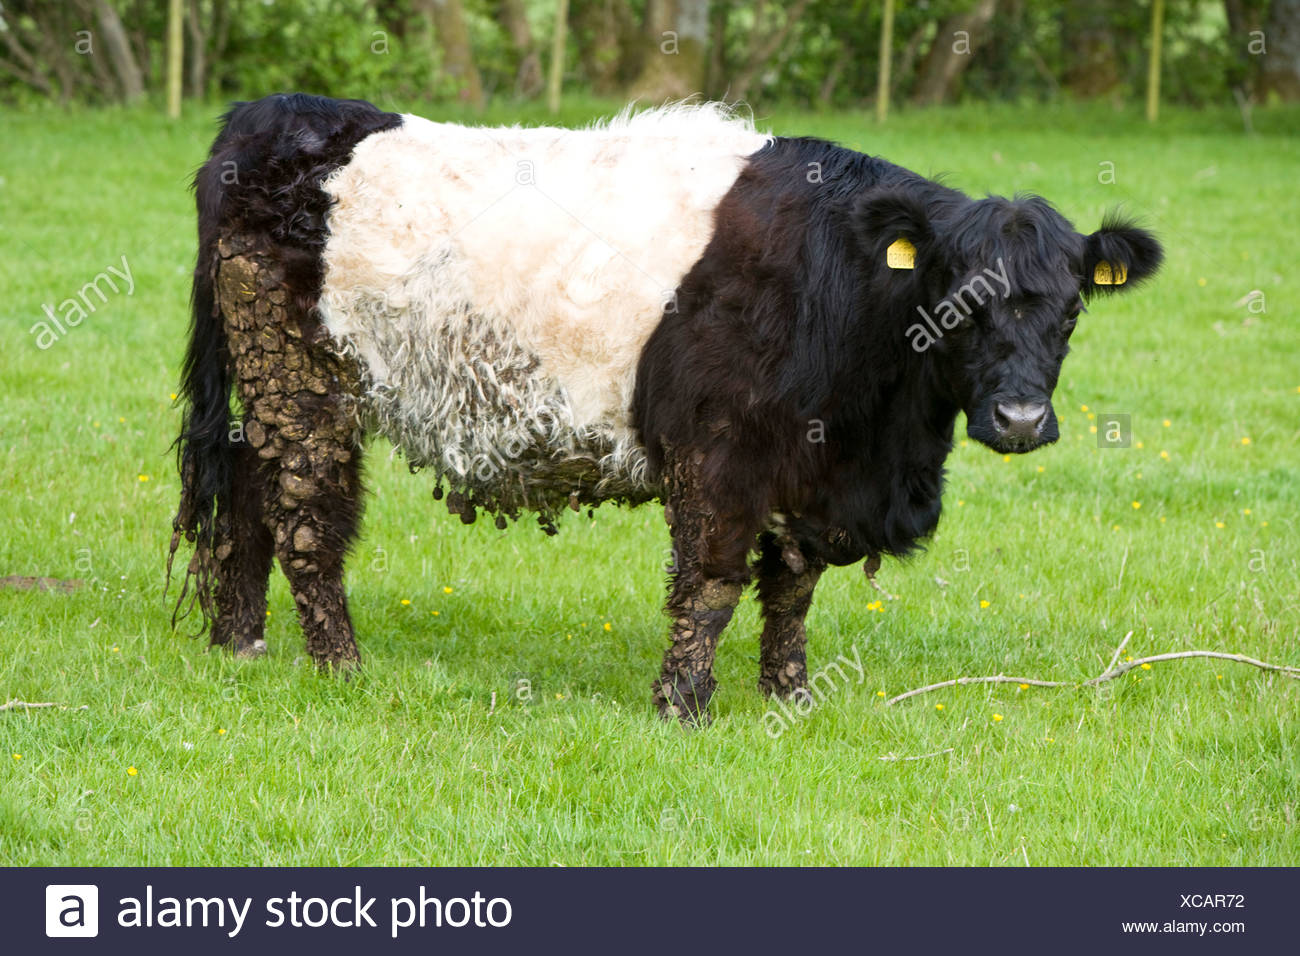 Belted Galloway rare breeds cow - Stock Image